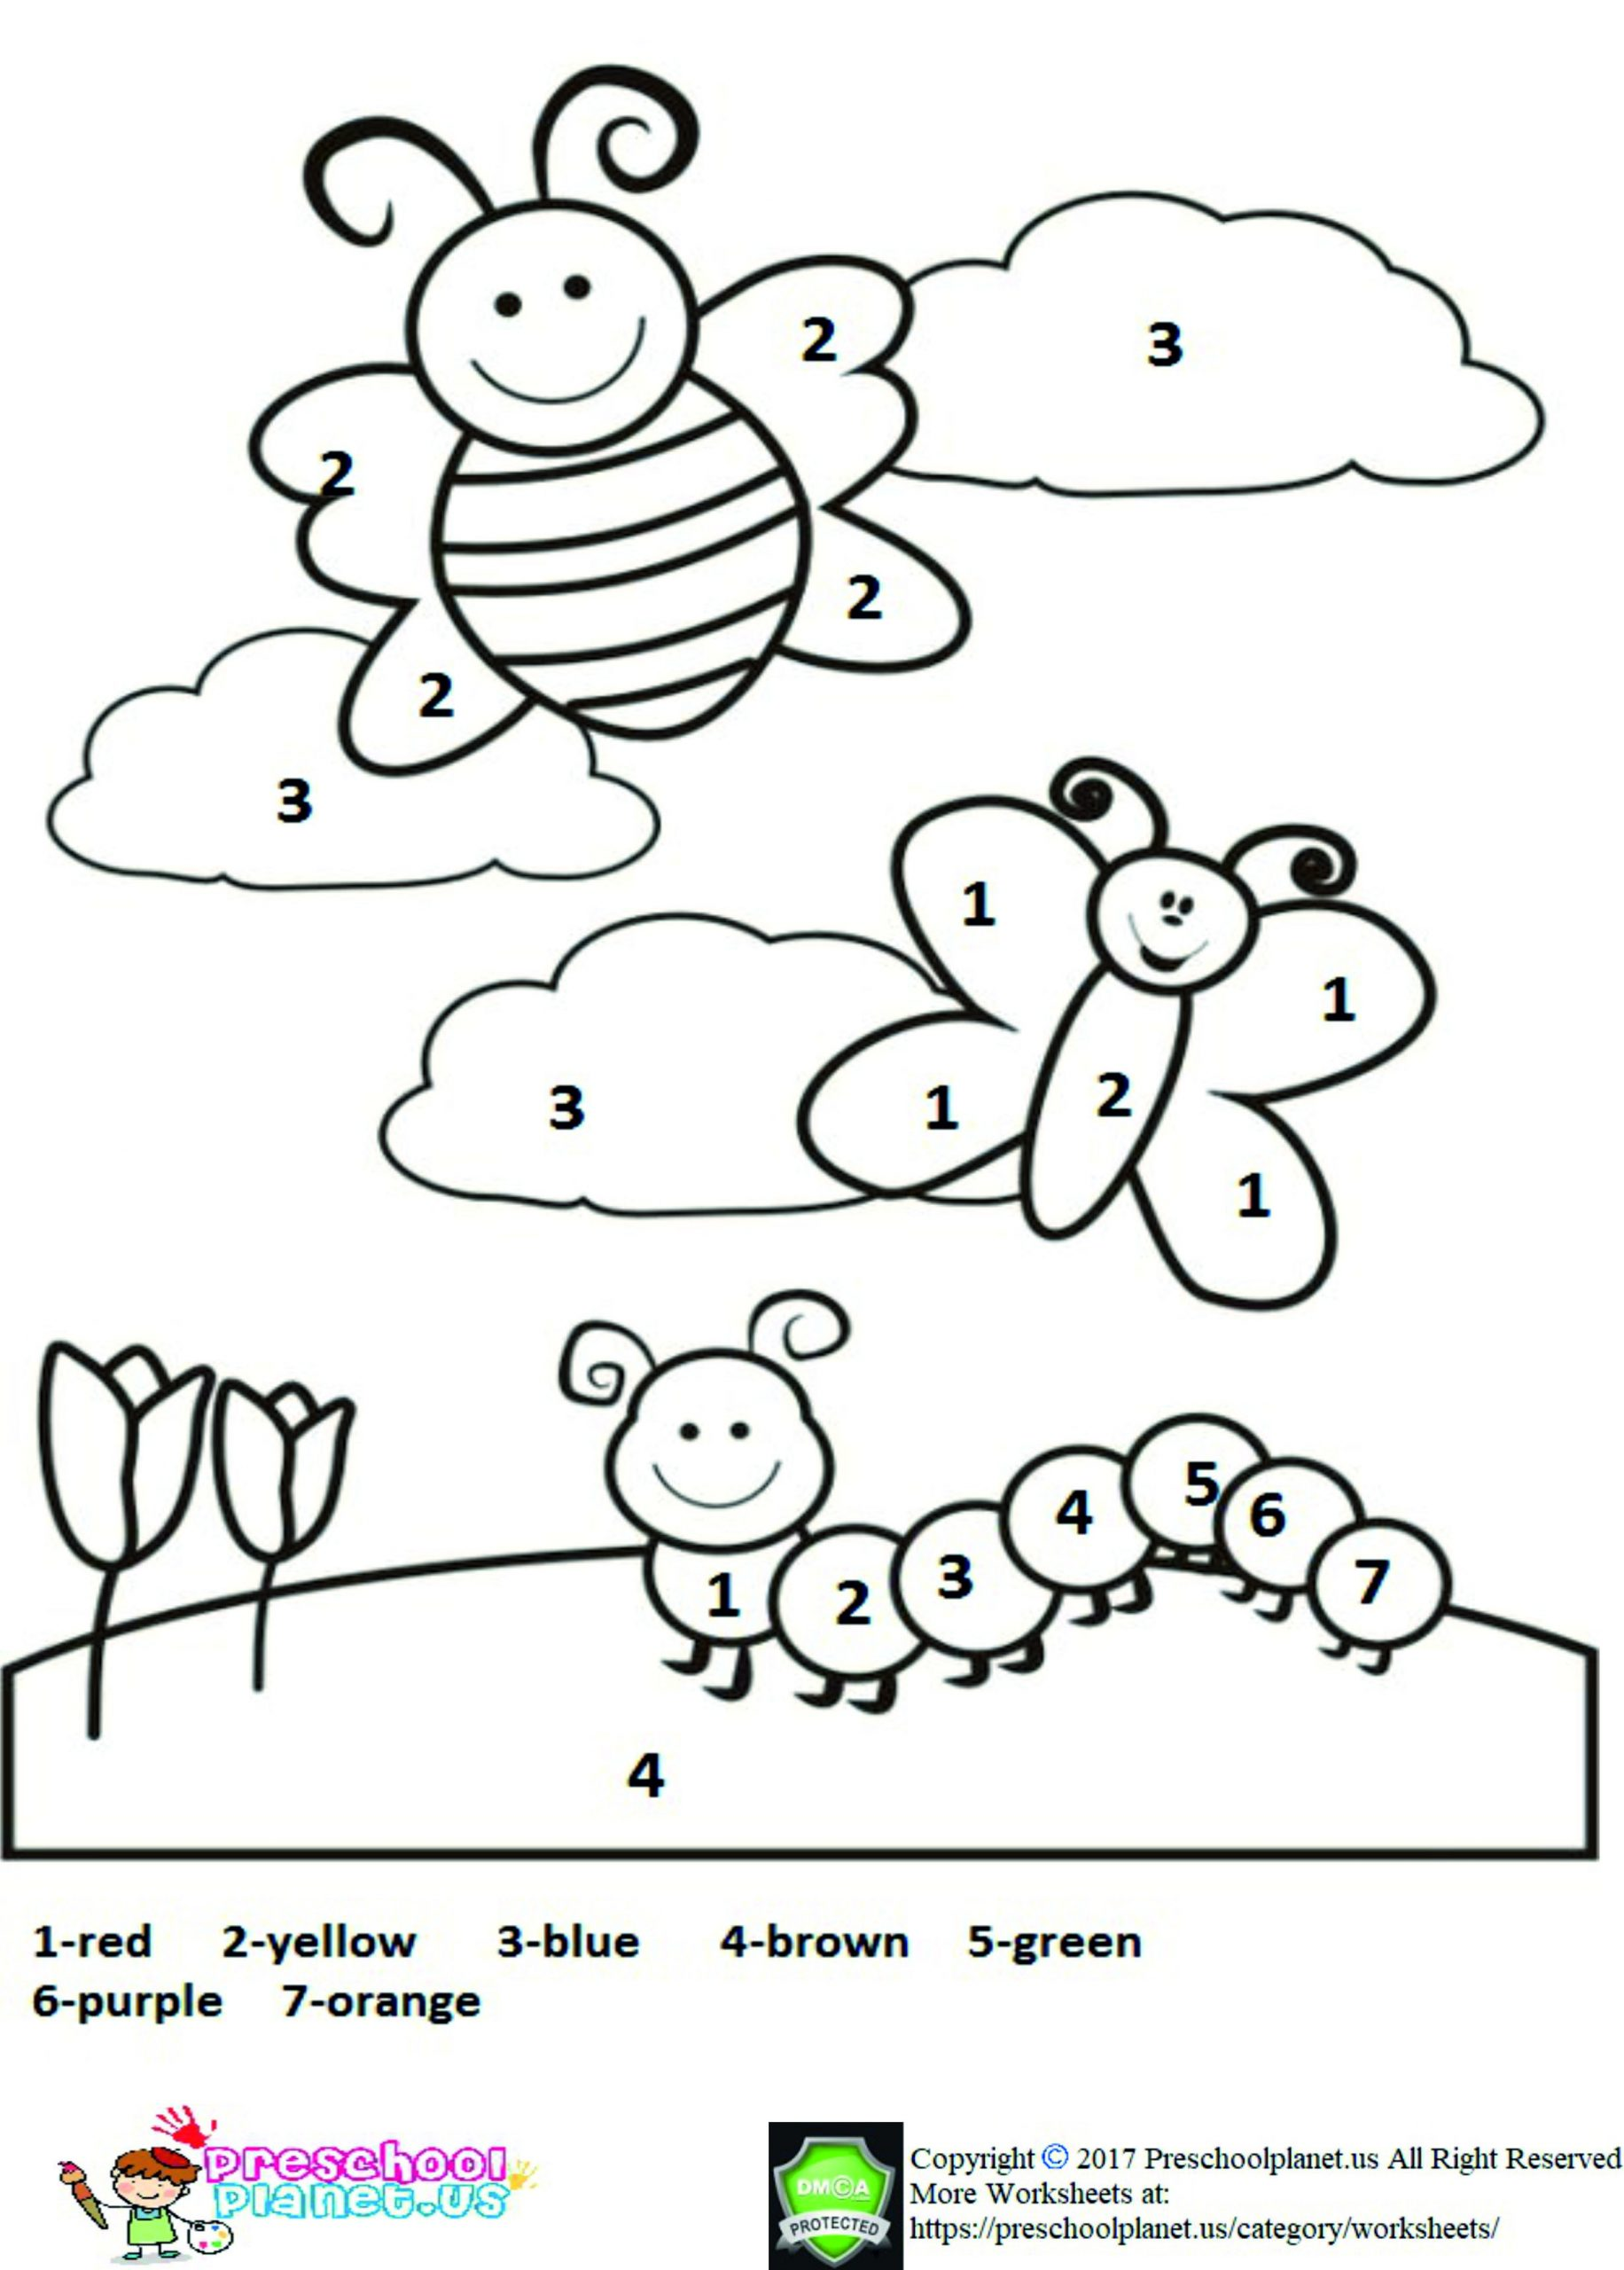 Spring Worksheets for 2nd Grade Spring Worksheets for 2nd Grade – Preschoolplanet